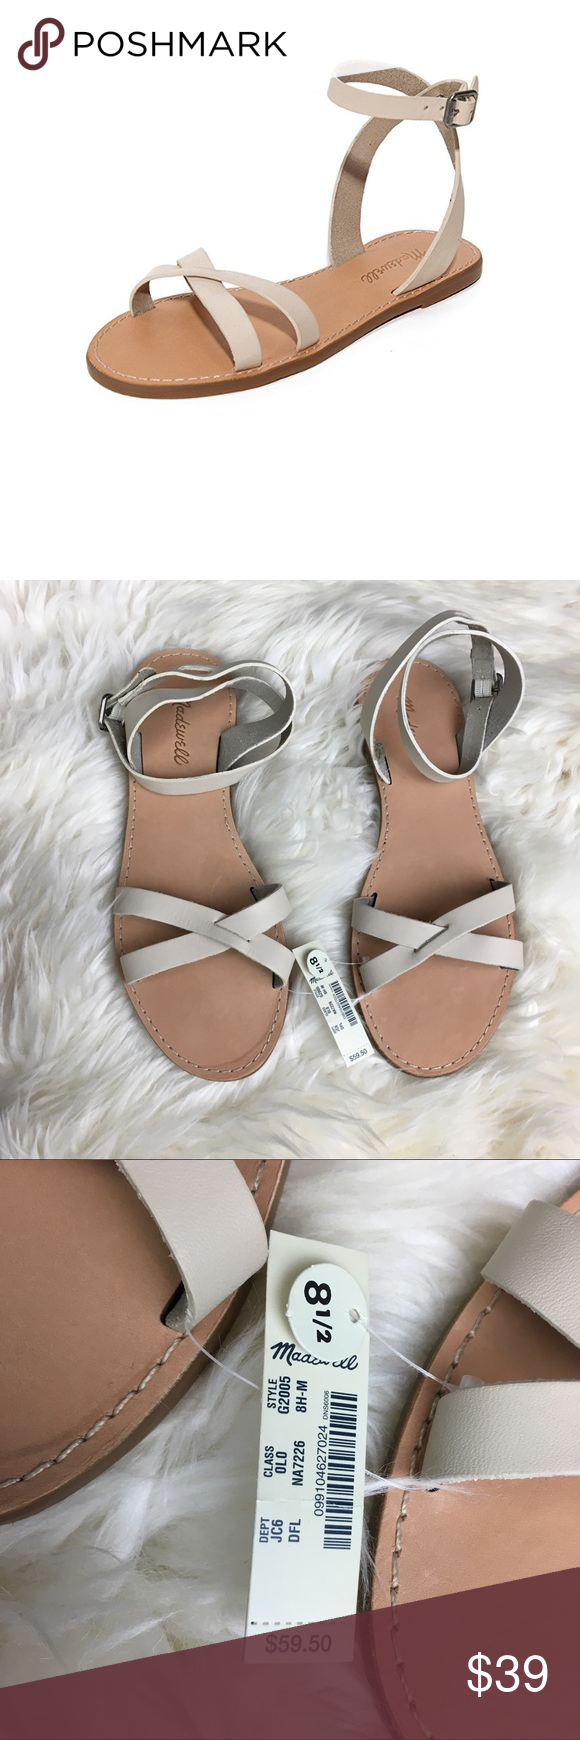 Madewell boardwalk leather dried flax sandal Madewell Size